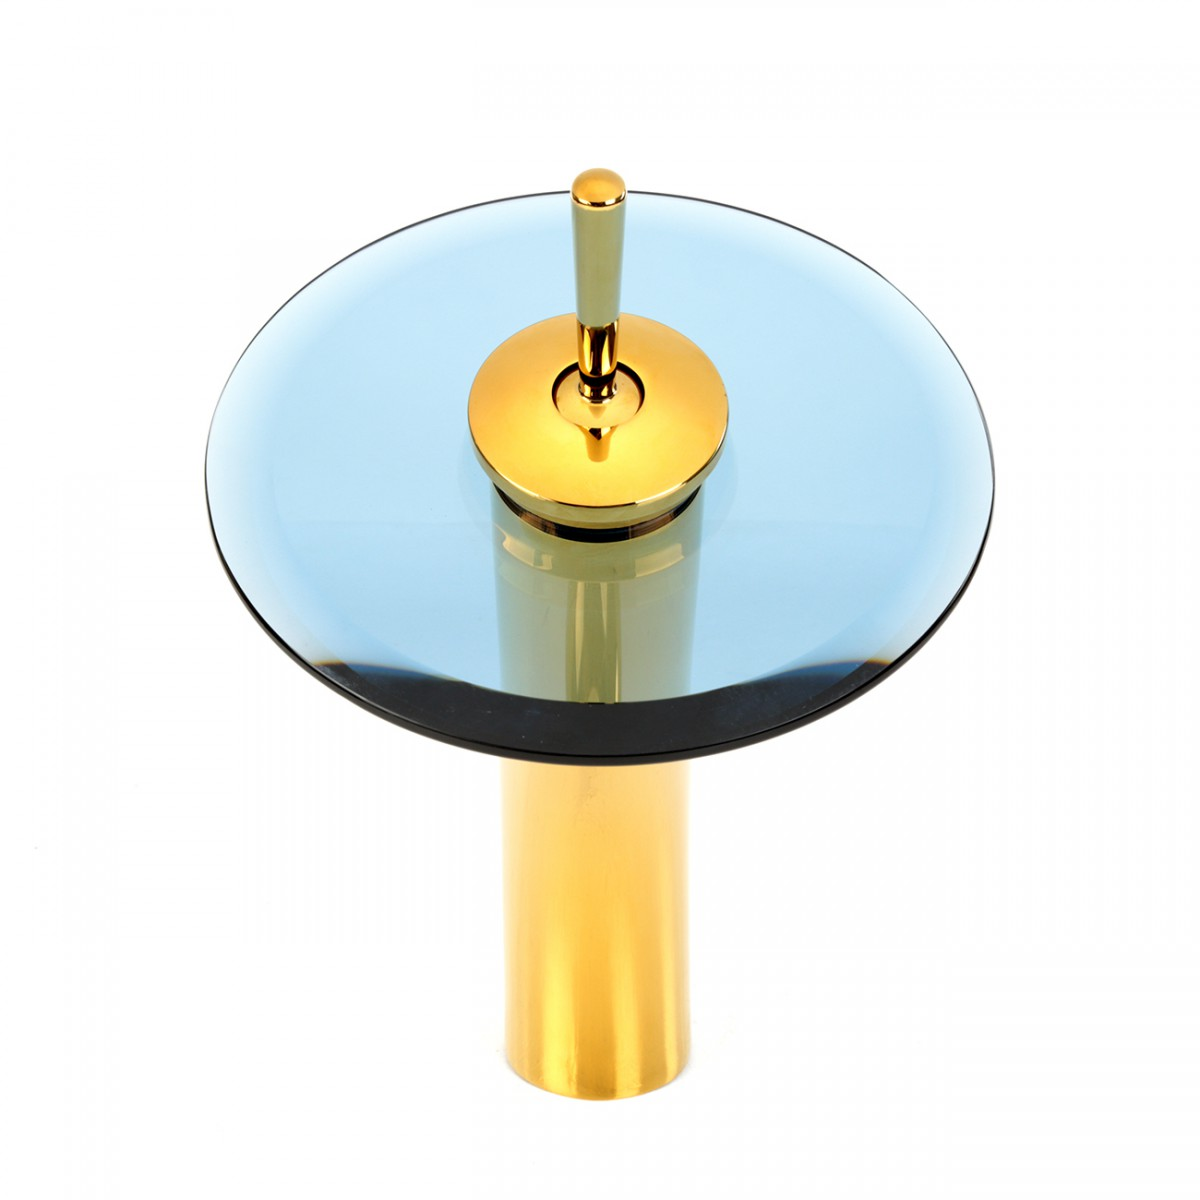 Waterfall Faucet Heavy Cast PVD Brass 12 Blue Glass Glass plate Waterfall Sink Faucet Waterfall Bathroom Faucets Glass Disk Faucet